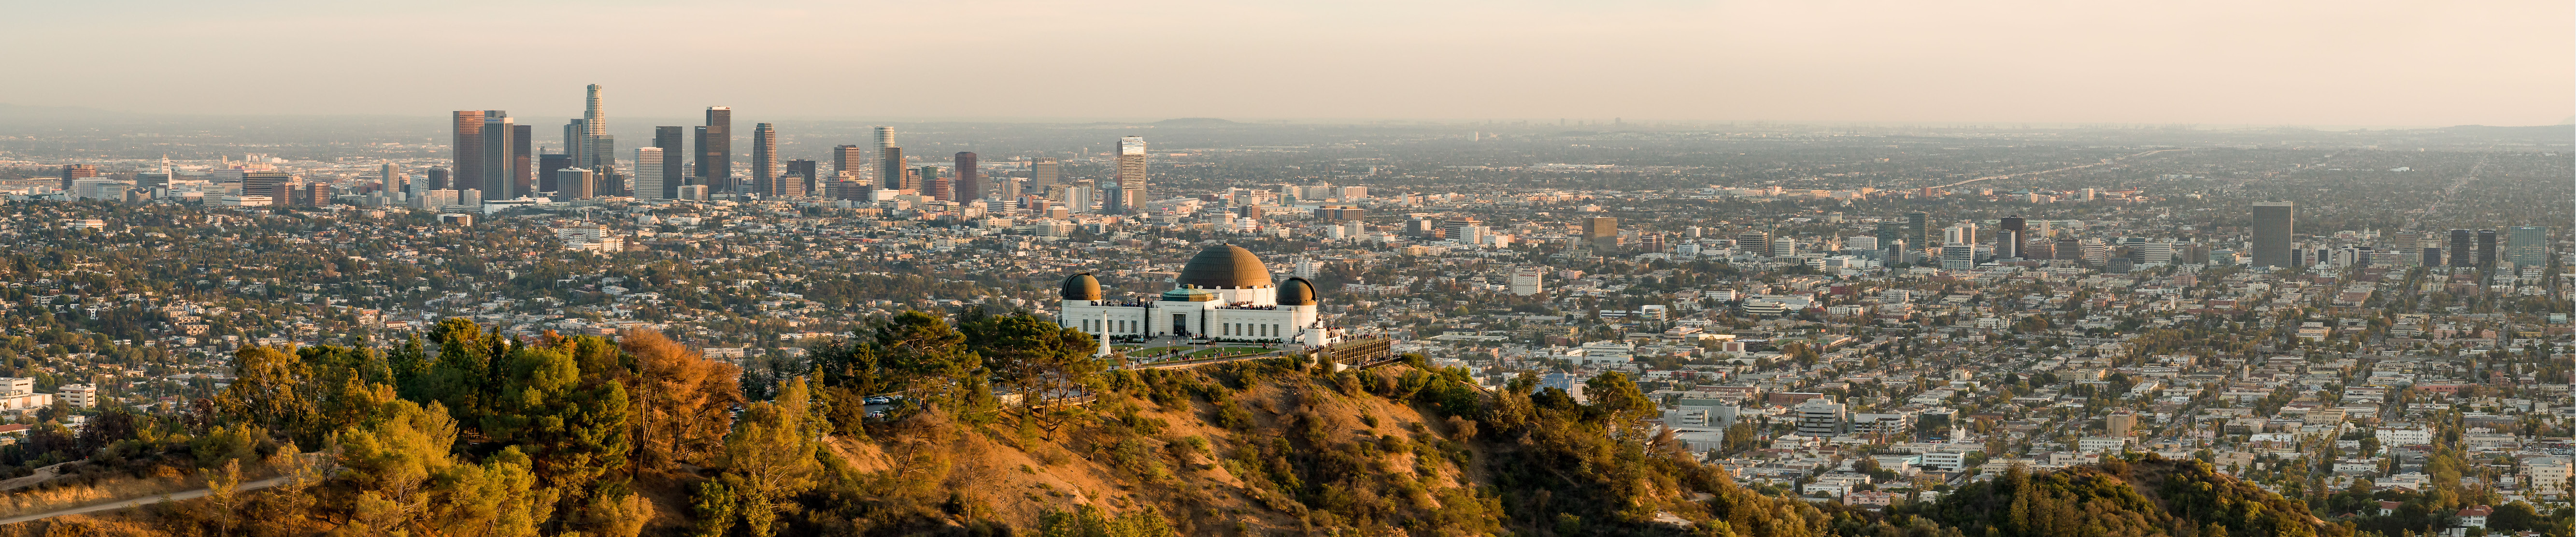 View of downtown Los Angeles from the Hollywood hills